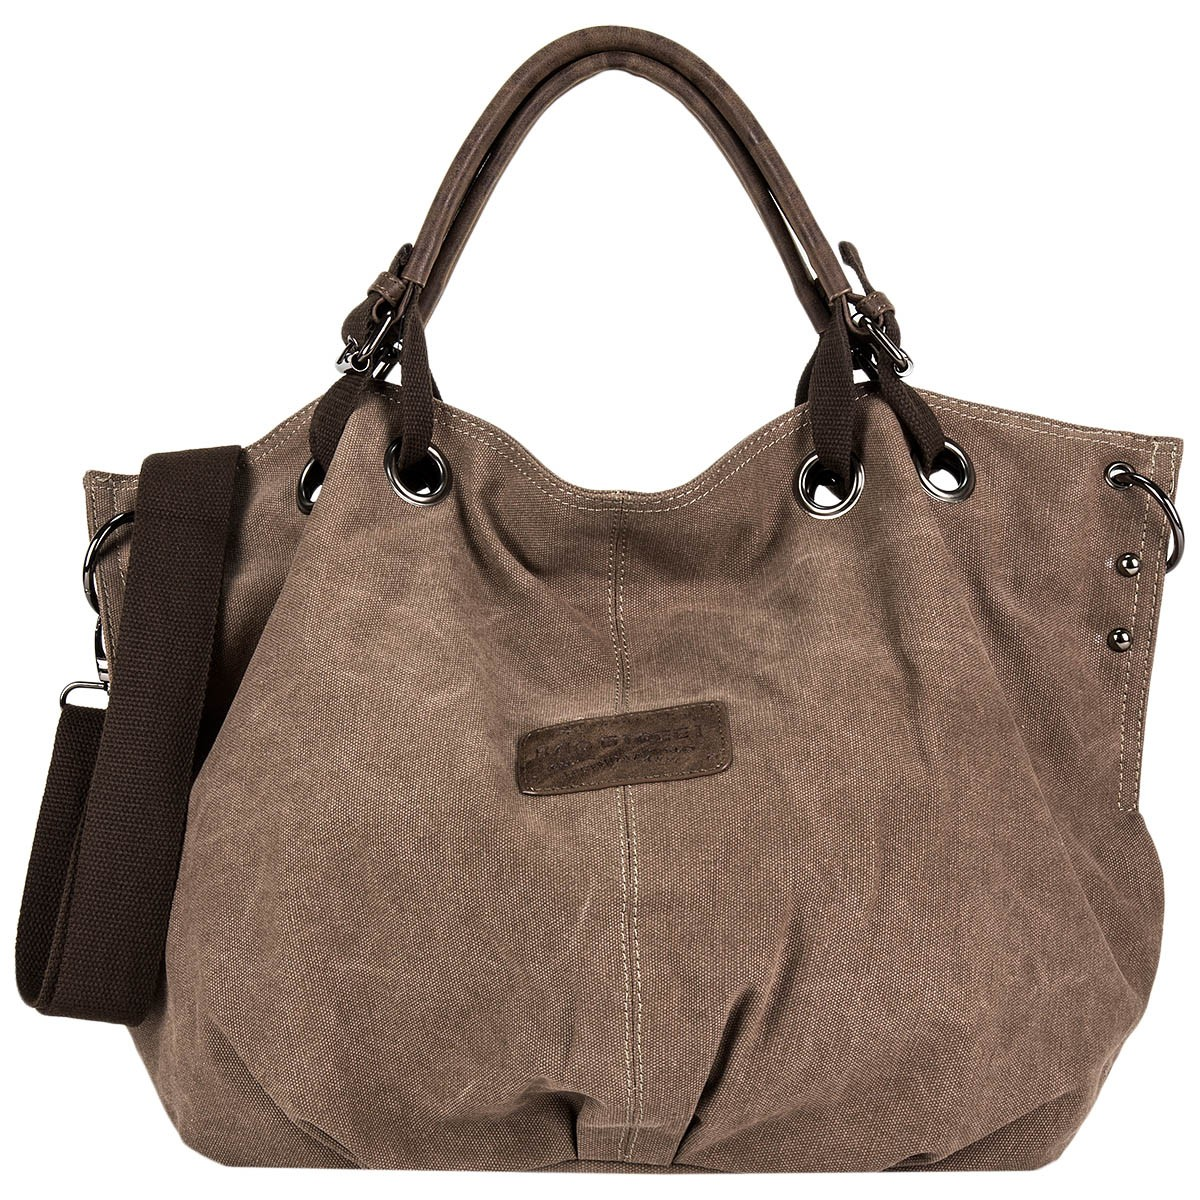 d1c23a1af4aea Bag Street Damen Shopper Handtasche Canvas 4530-1